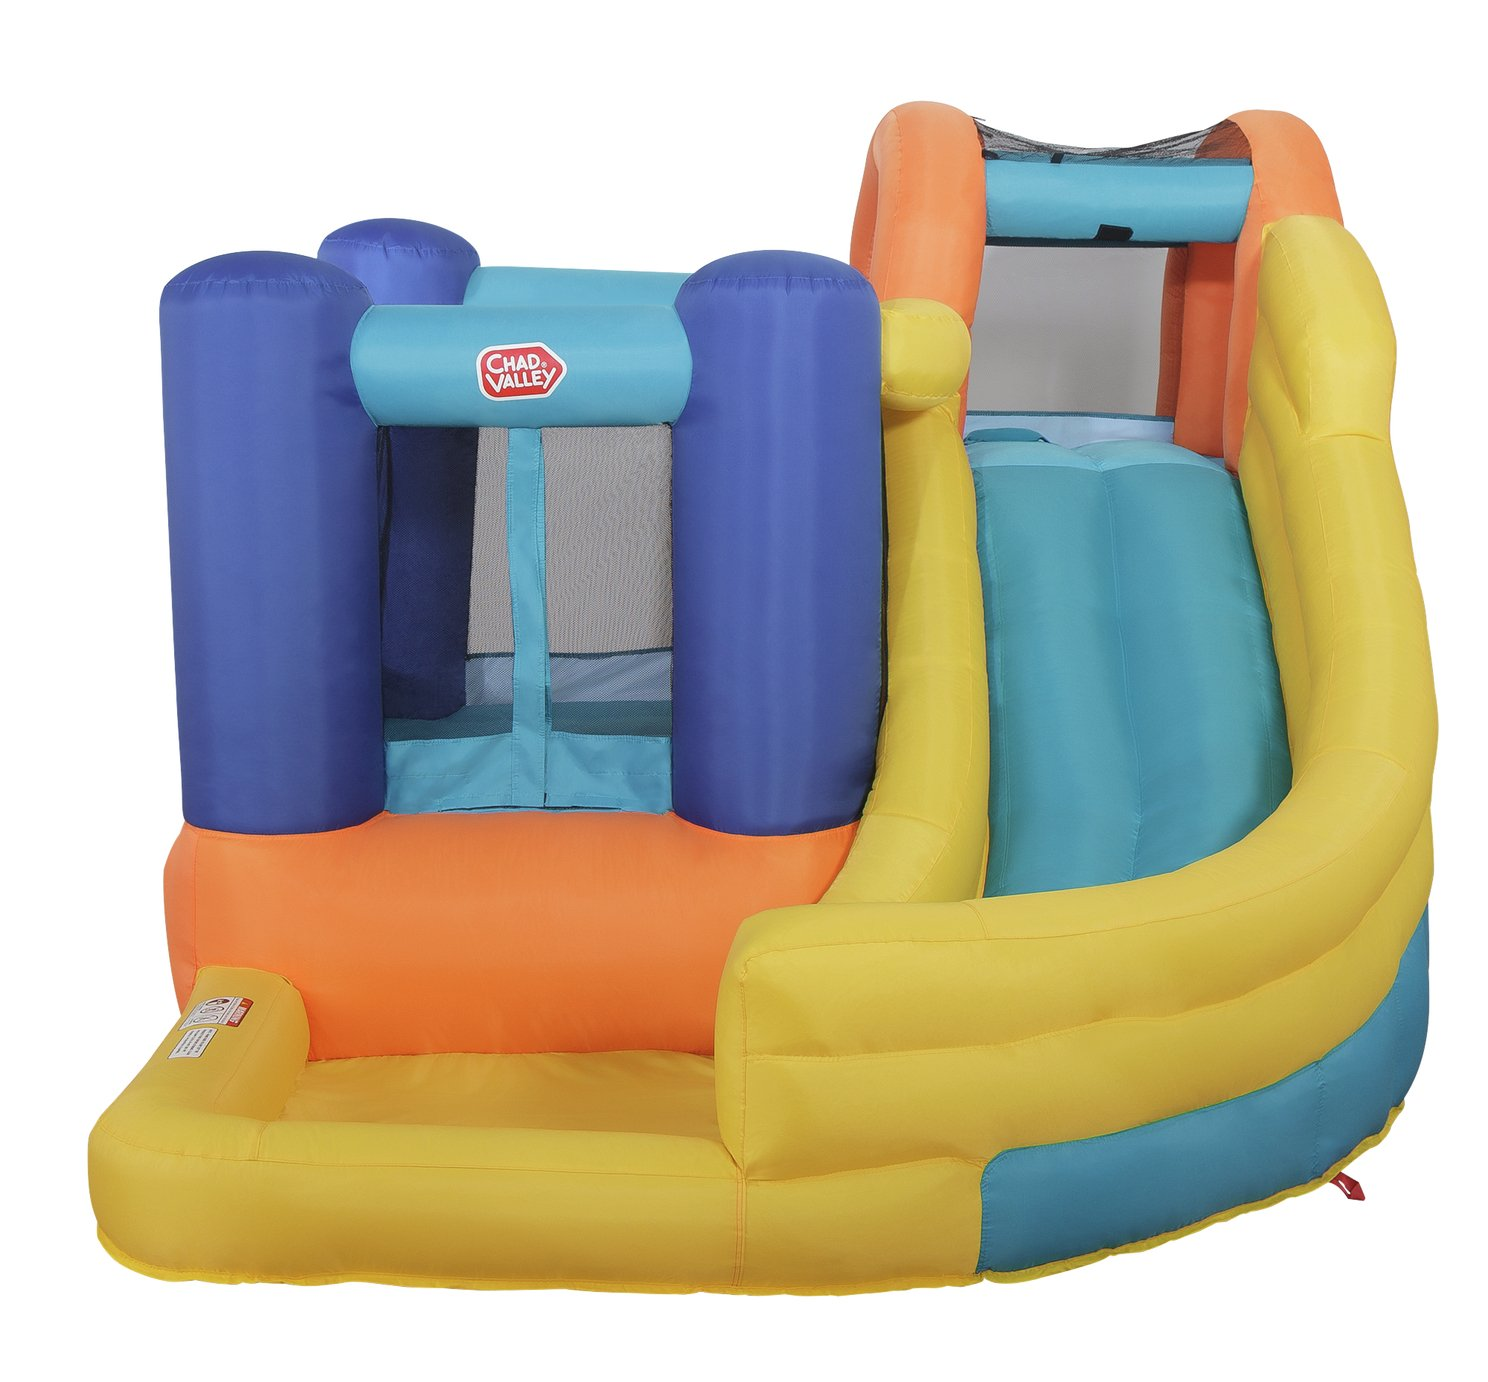 Chad Valley 9.5ft Inflatable Funhouse with Pool and Slide